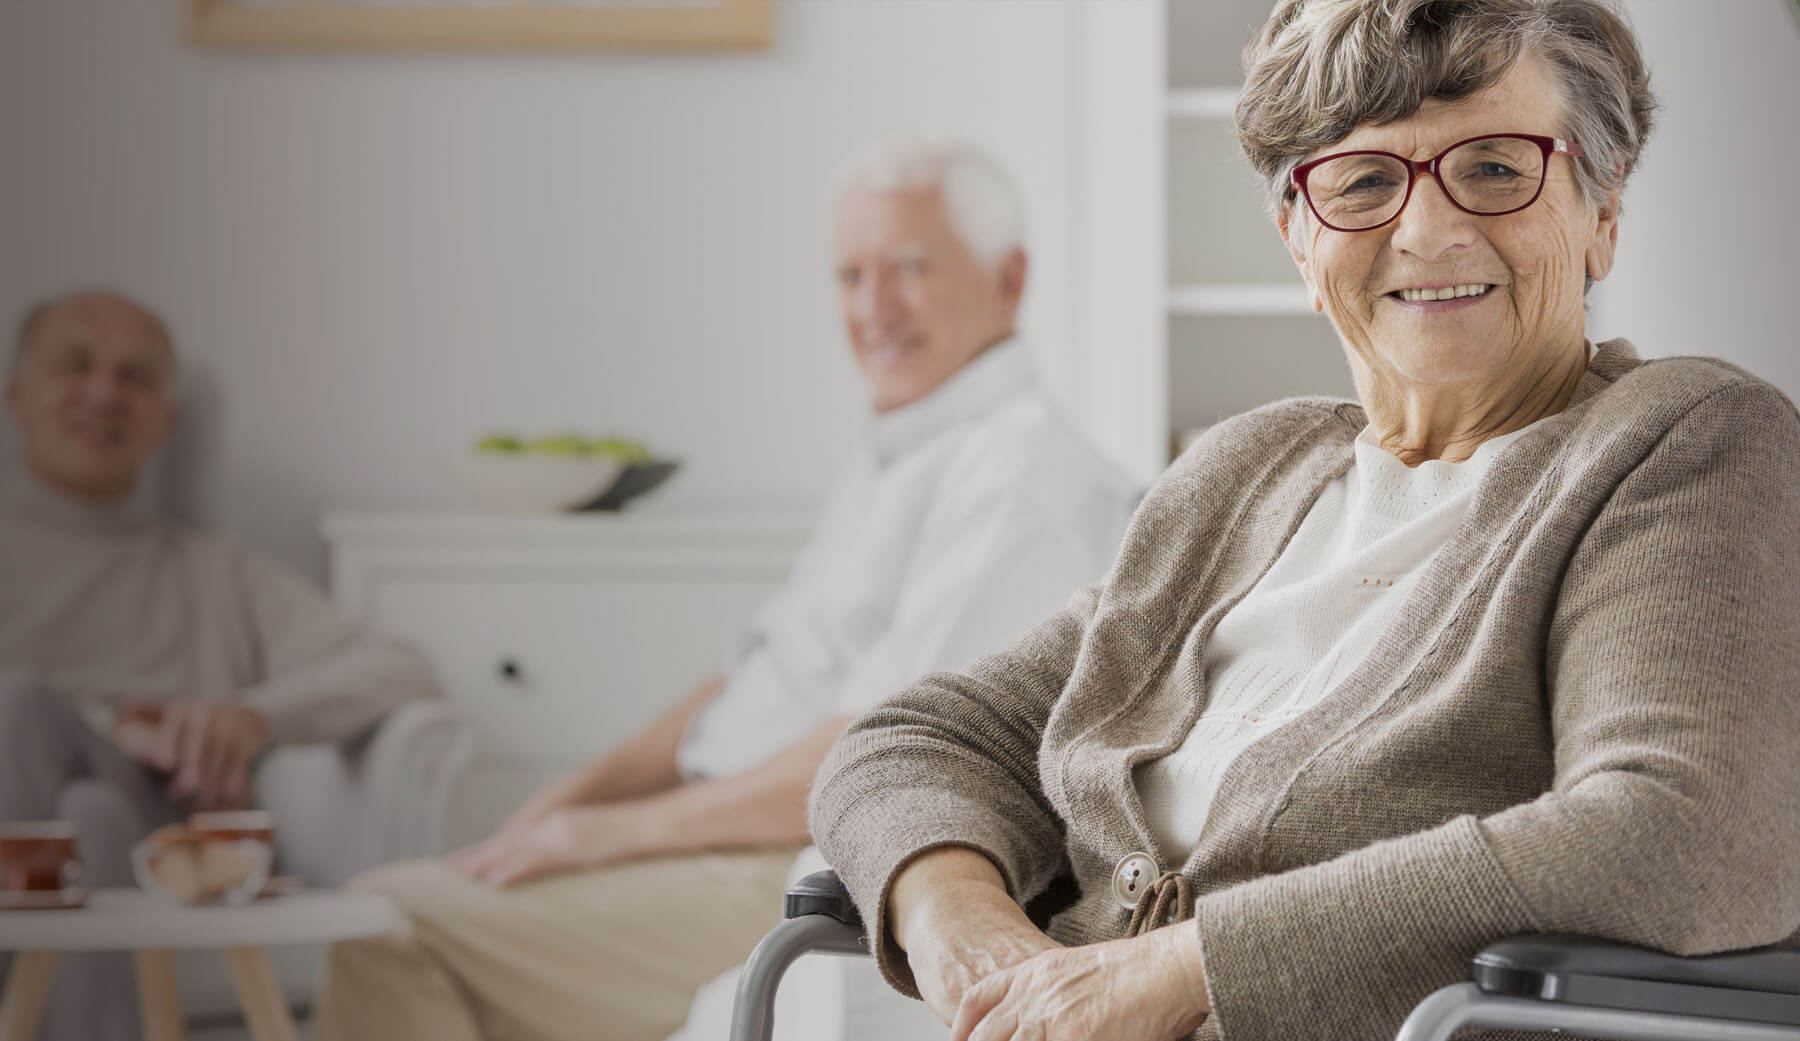 Old lady with glasses in wheelchair smiling